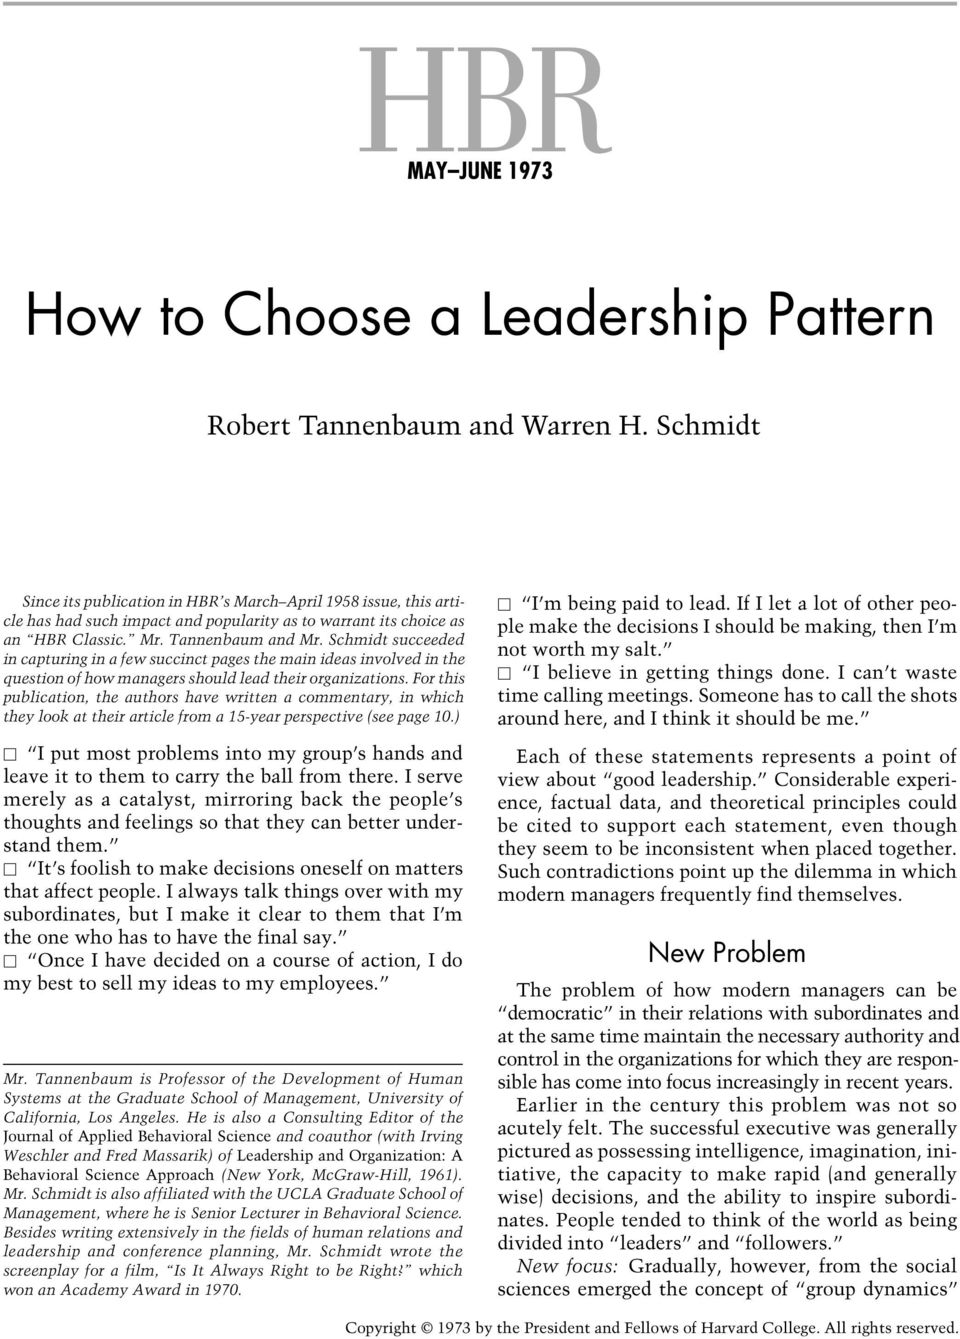 Schmidt succeeded in capturing in a few succinct pages the main ideas involved in the question of how managers should lead their organizations.